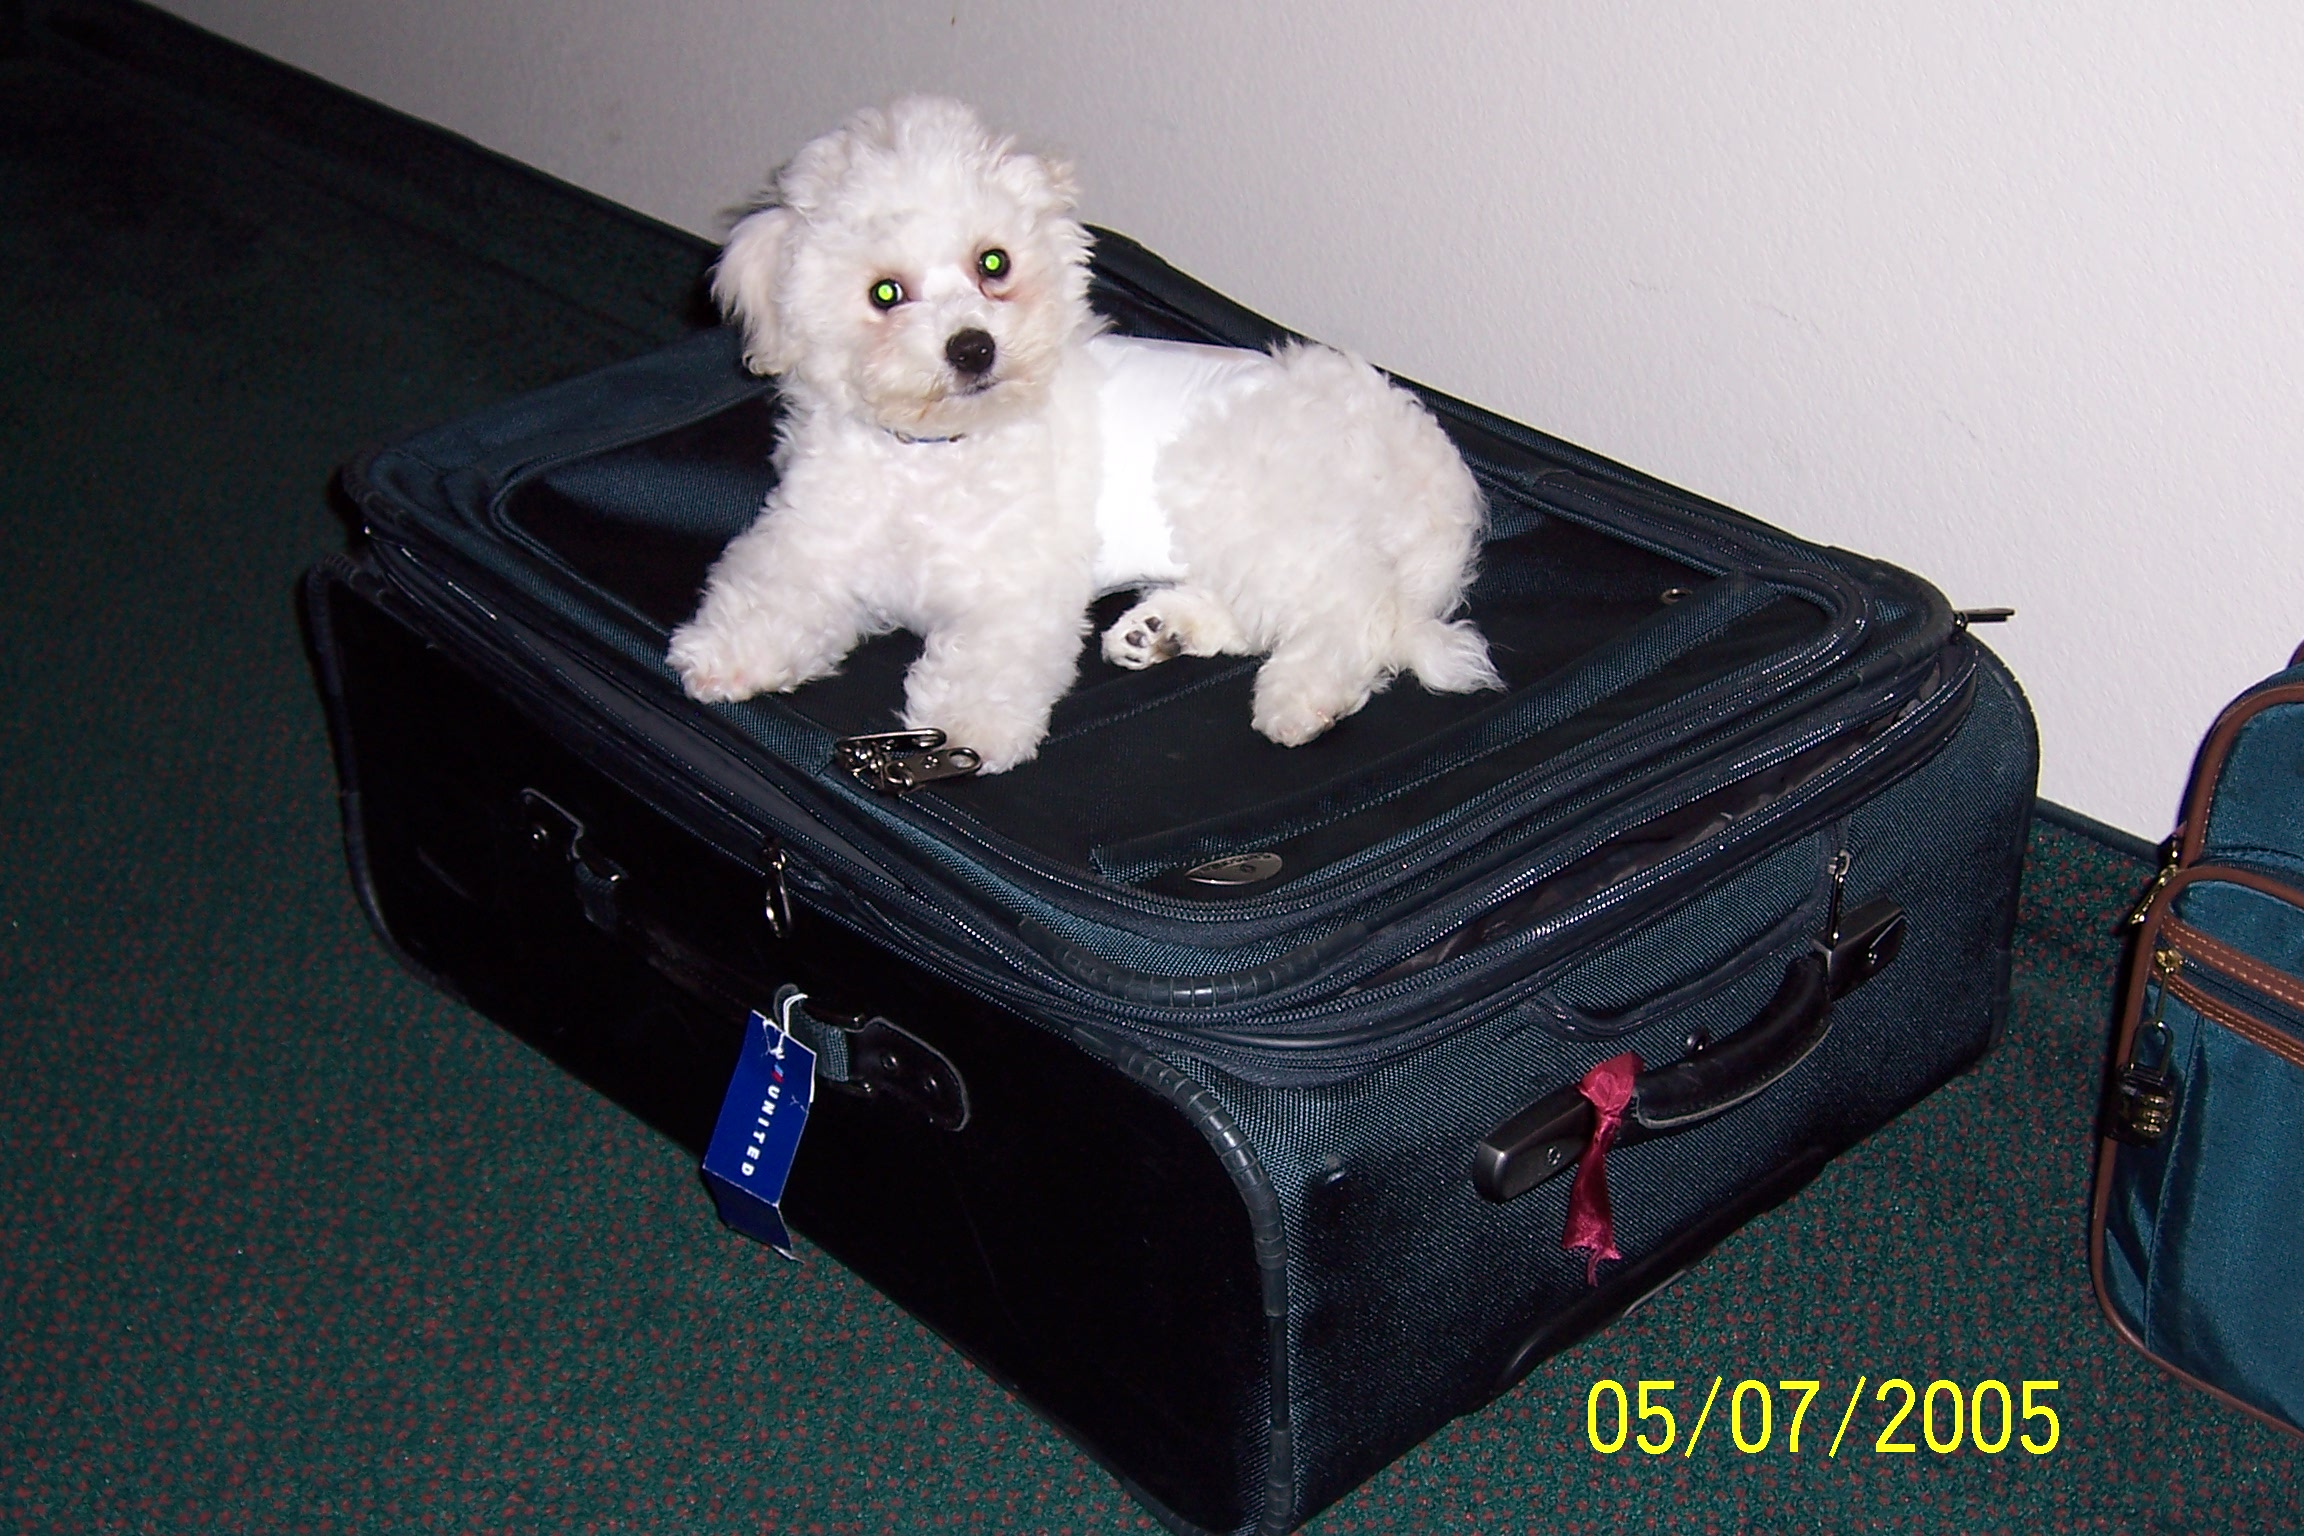 5/7/2005: Ready and anxious to go home with us!